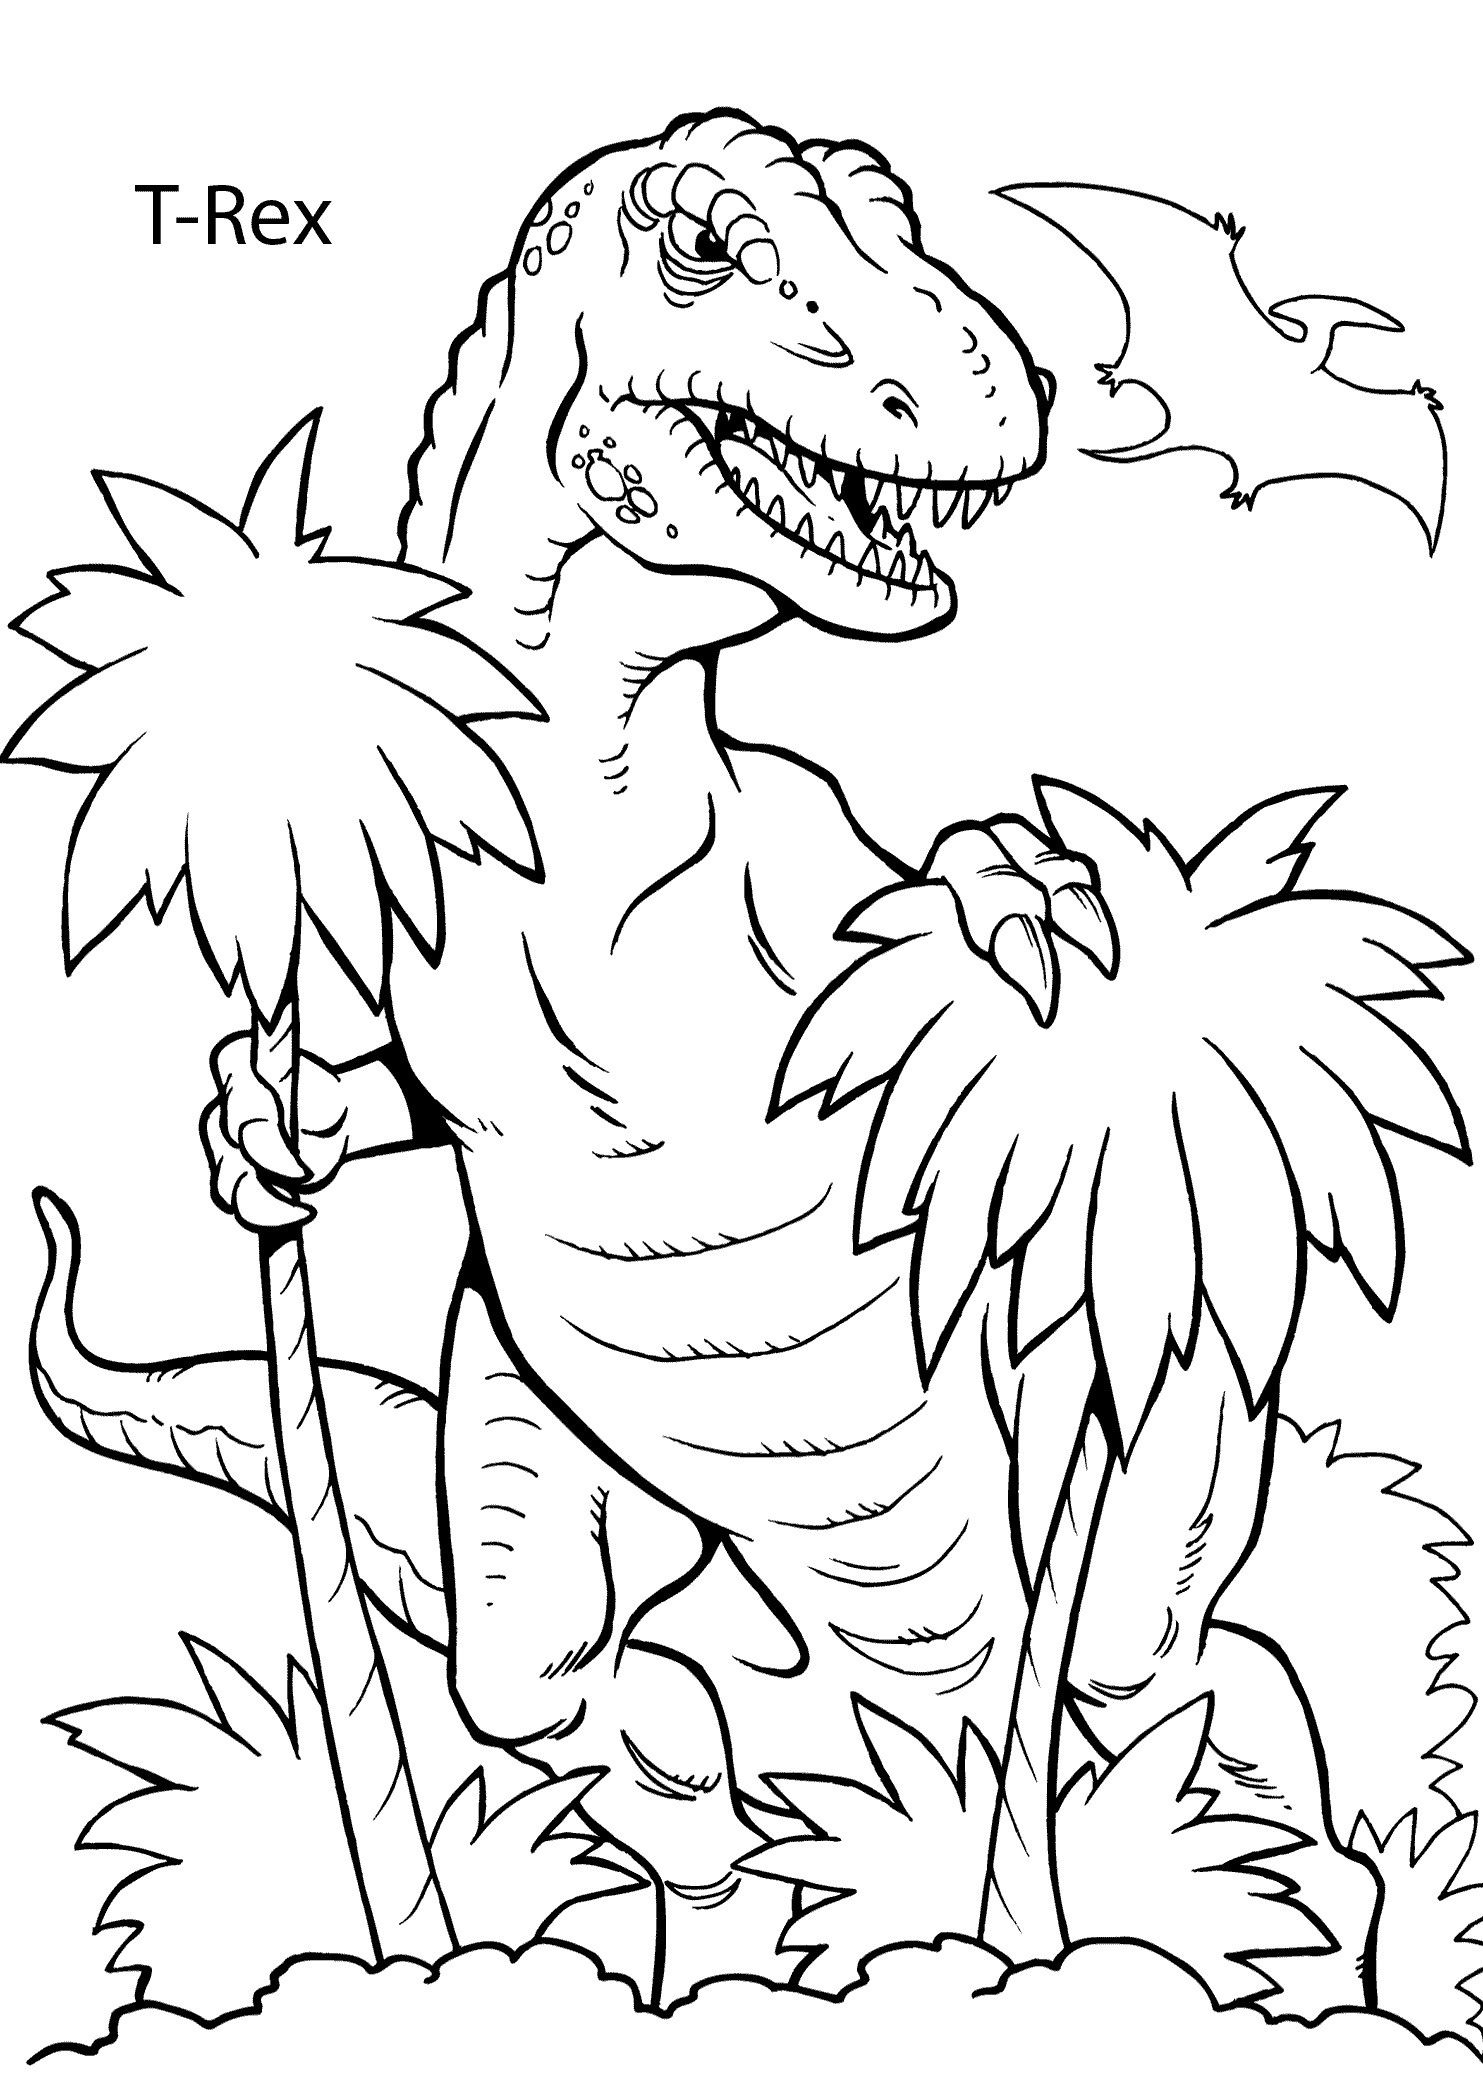 all dinosaurs coloring pages, dino coloring mands ark, dinosaurs